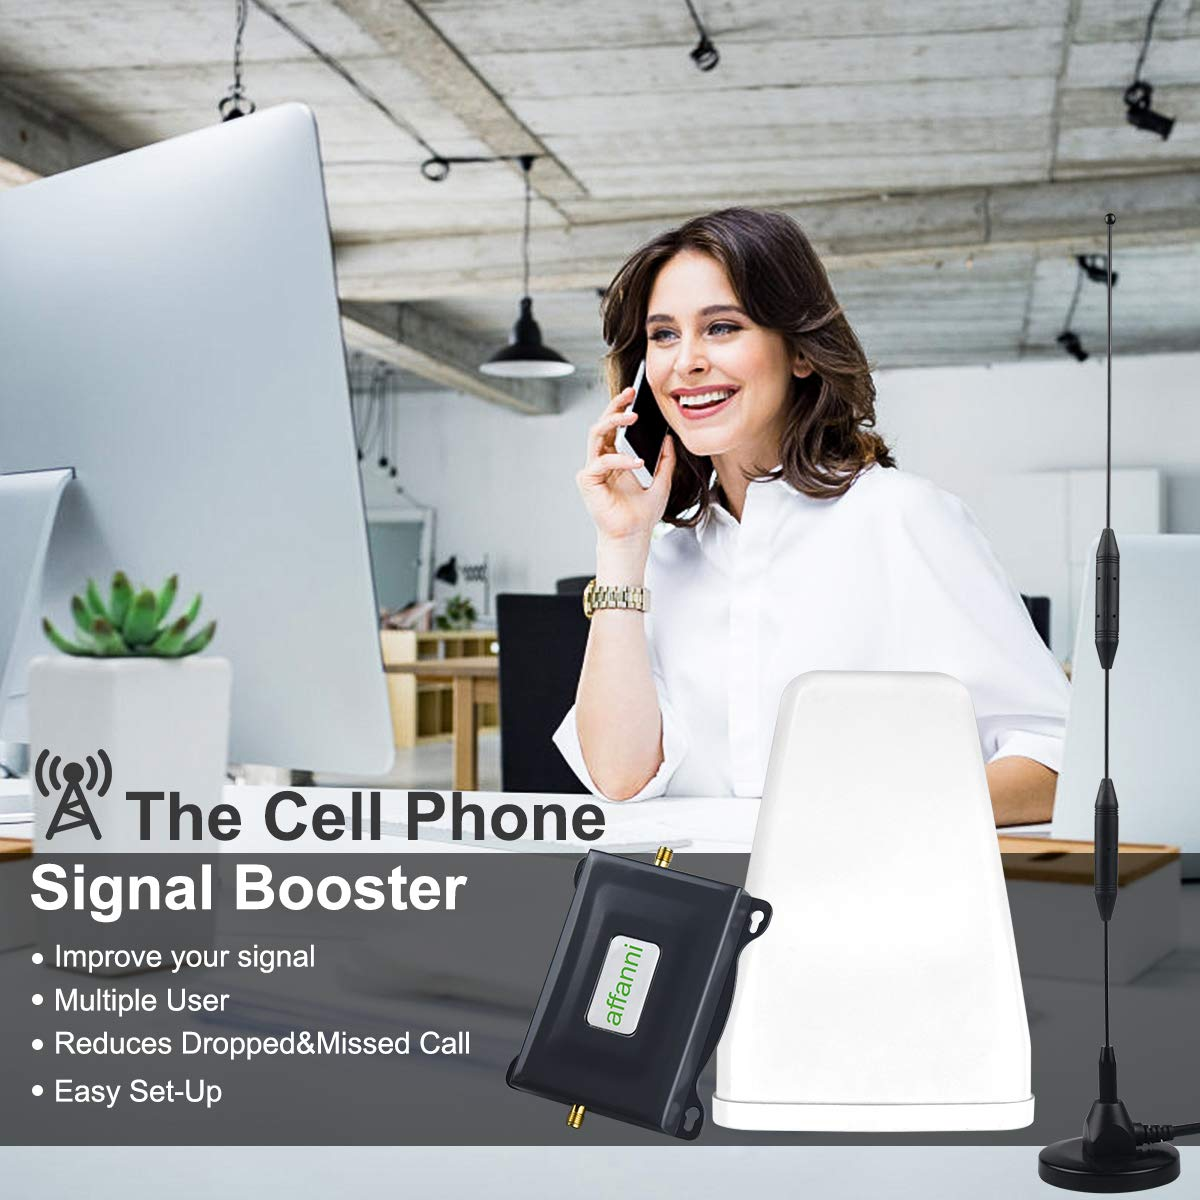 Boost 4G Data/&Voice Verizon Cell Phone Signal Booster 4G LTE Band 13 FDD 700Mhz Cell Phone Booster Verizon Cell Signal Booster Repeater Mobile Phone Signal Booster Amplifier Antennas Kits for Home